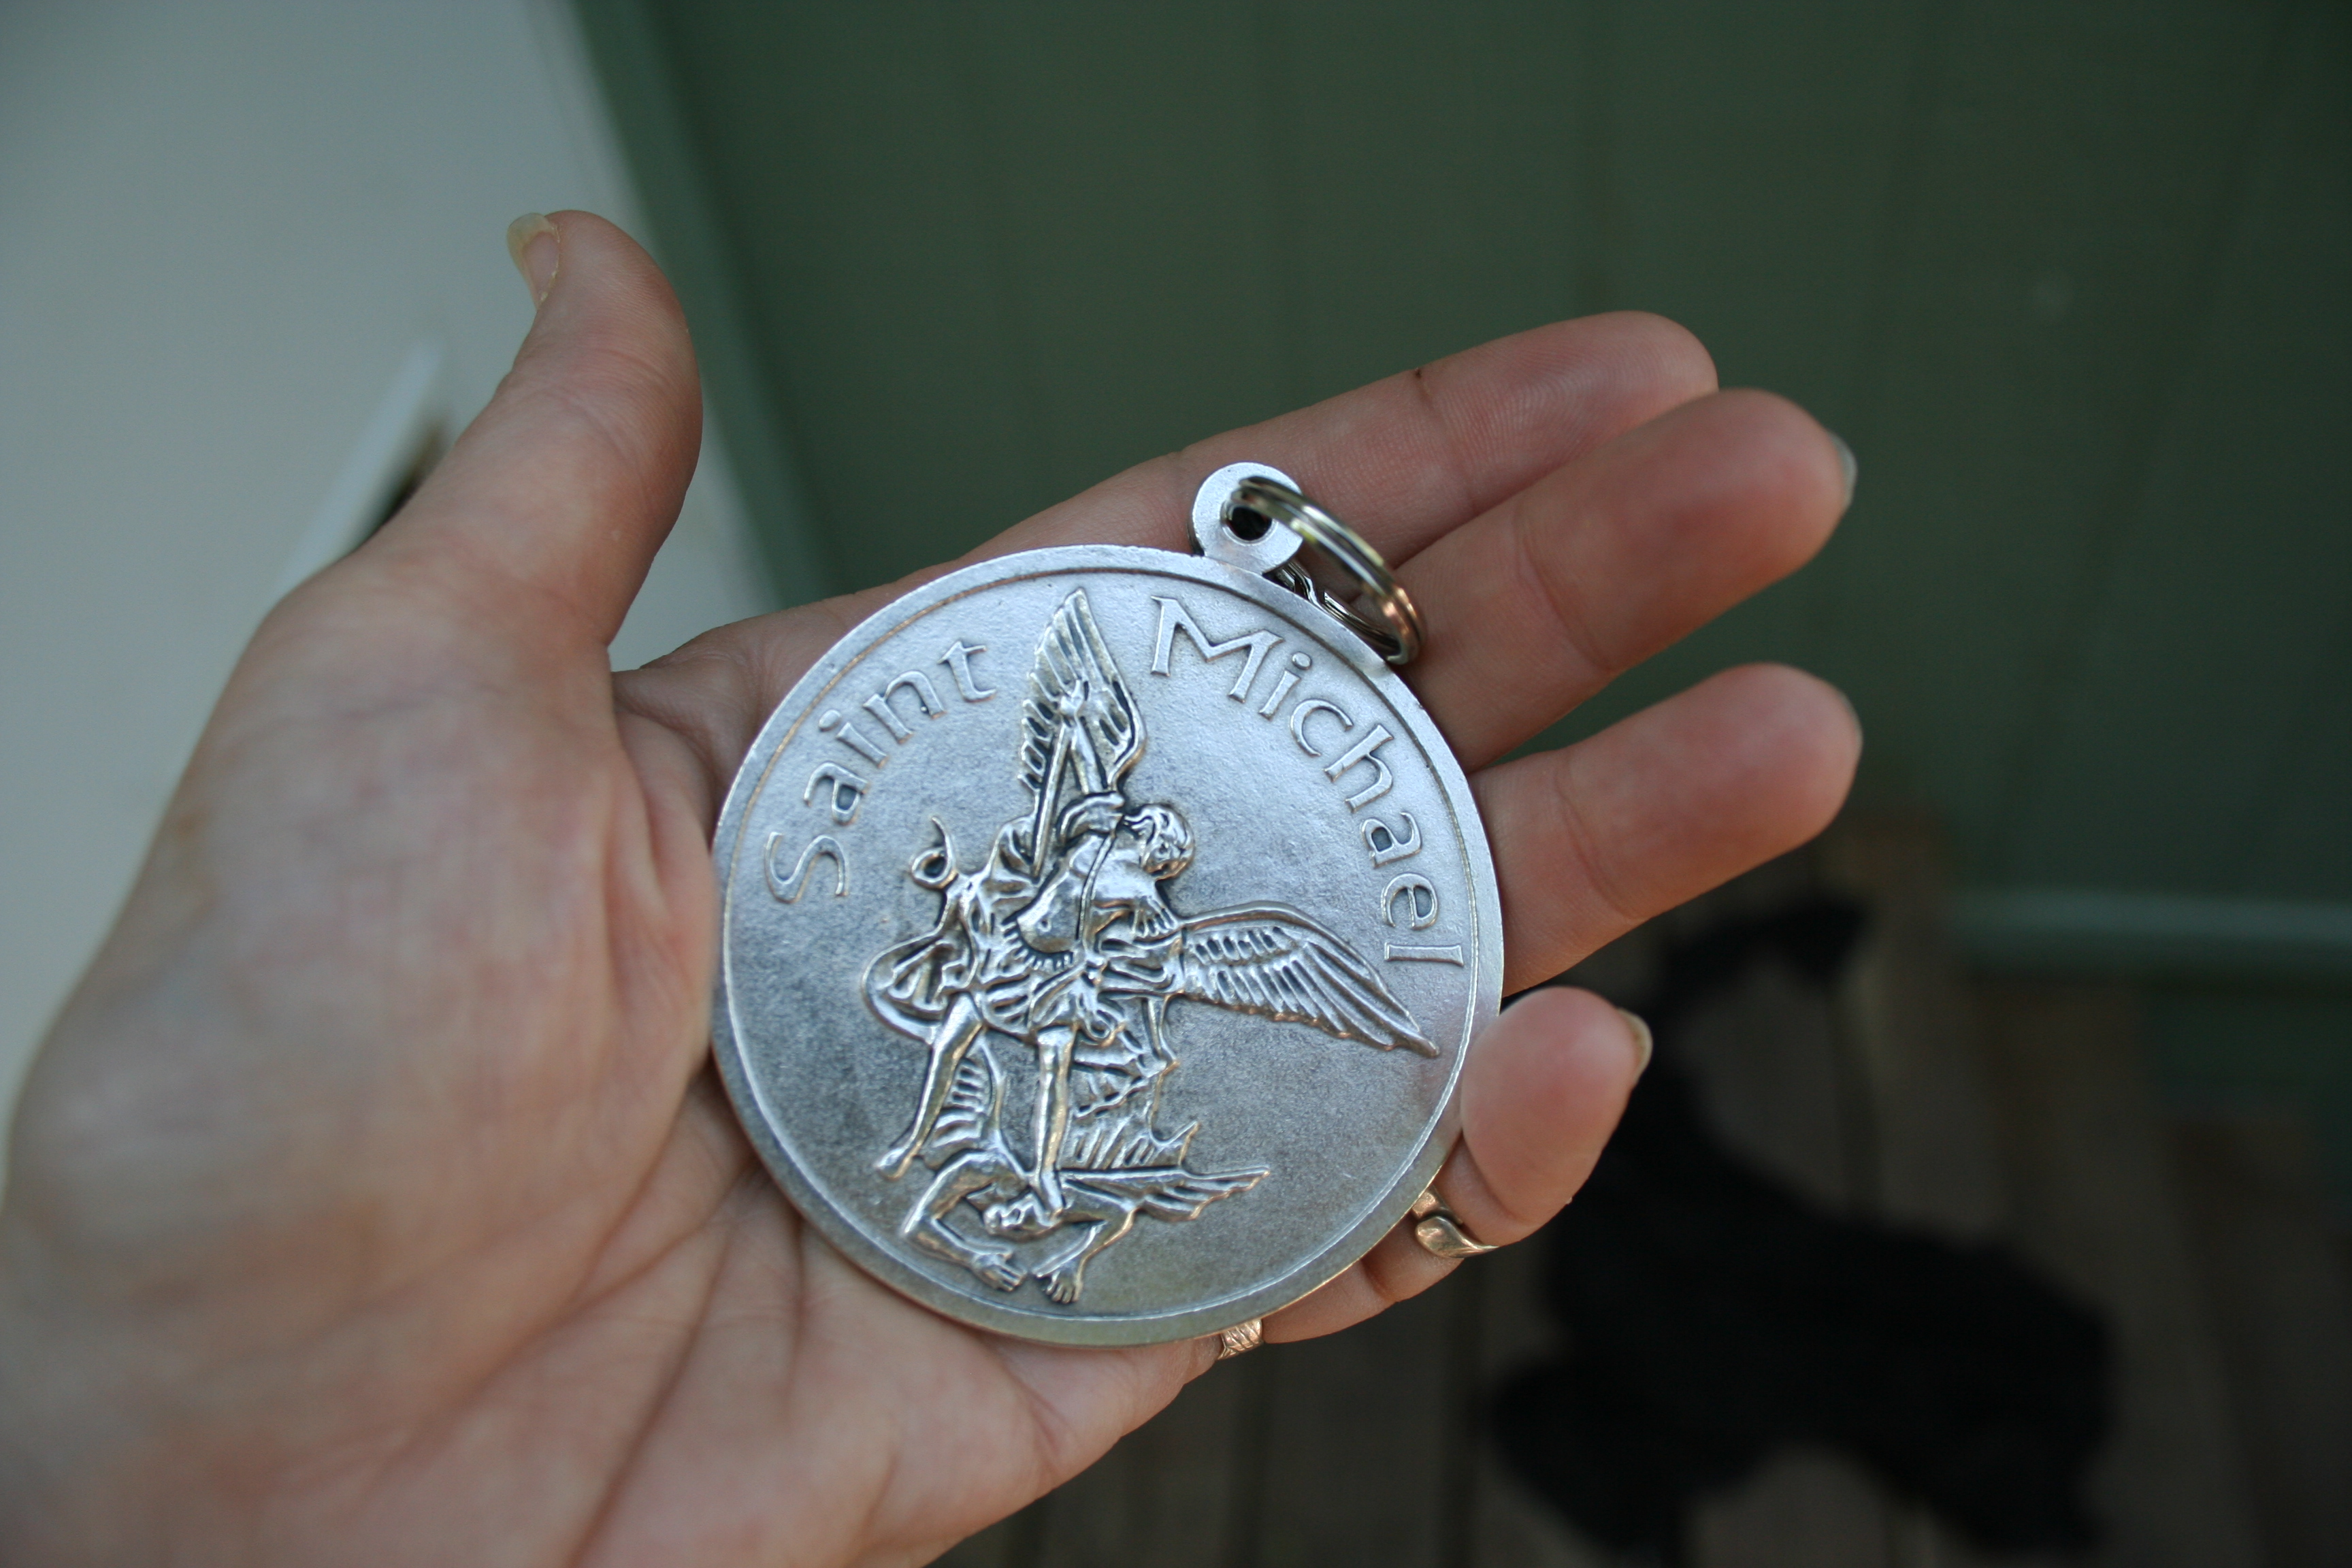 medallion his medal and catholic saint epicpew miraculous truly usain bolt faith